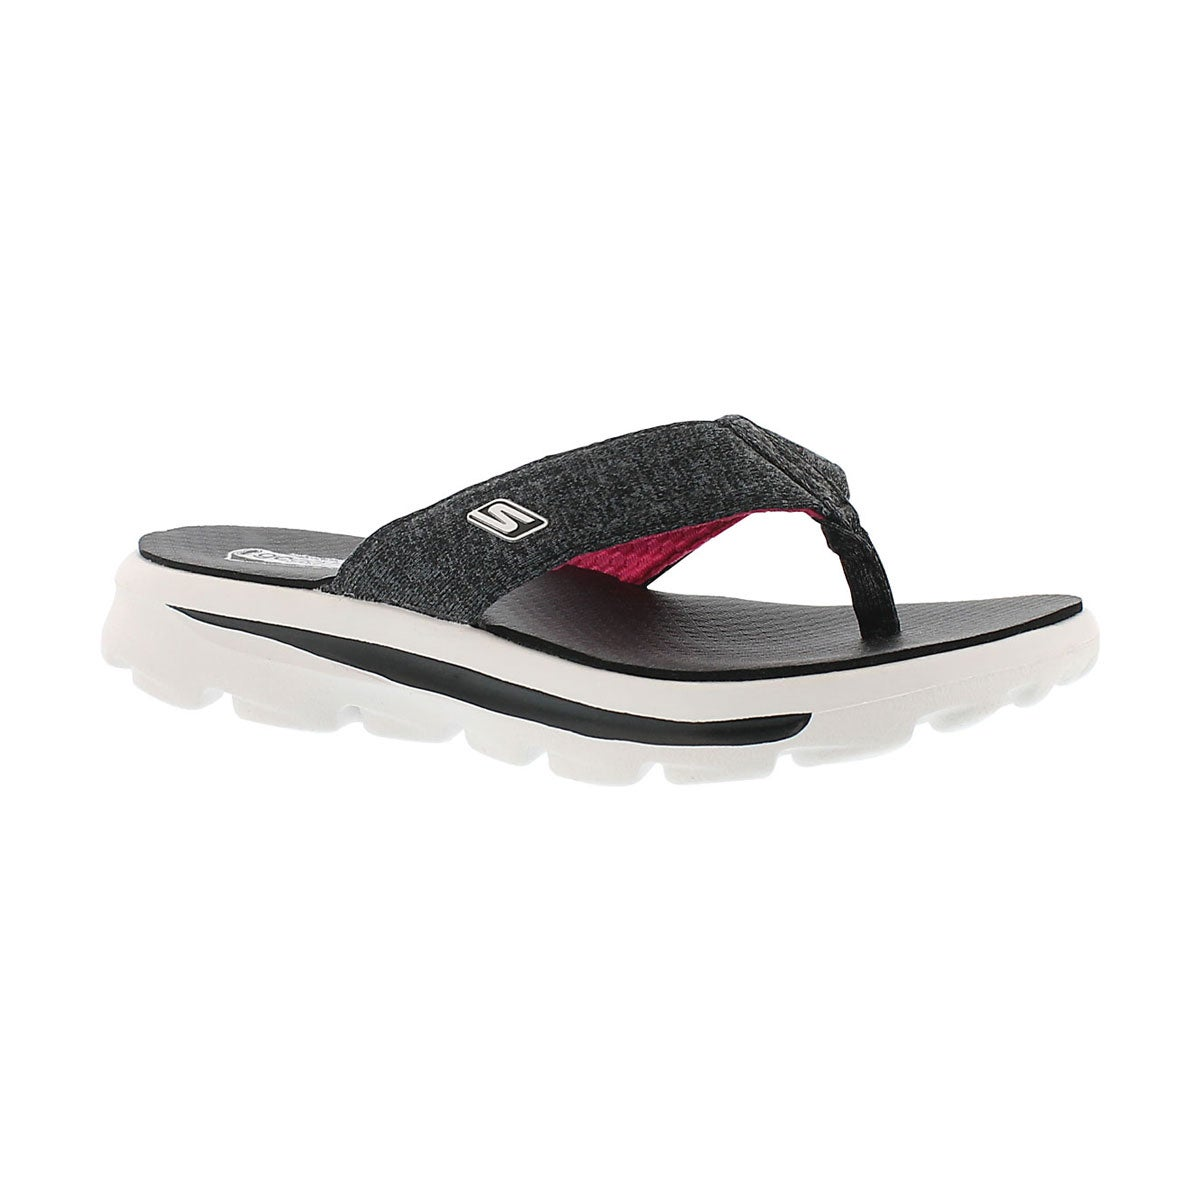 Girls' GOwalk MOVE SOLSTICE black/pink thongs